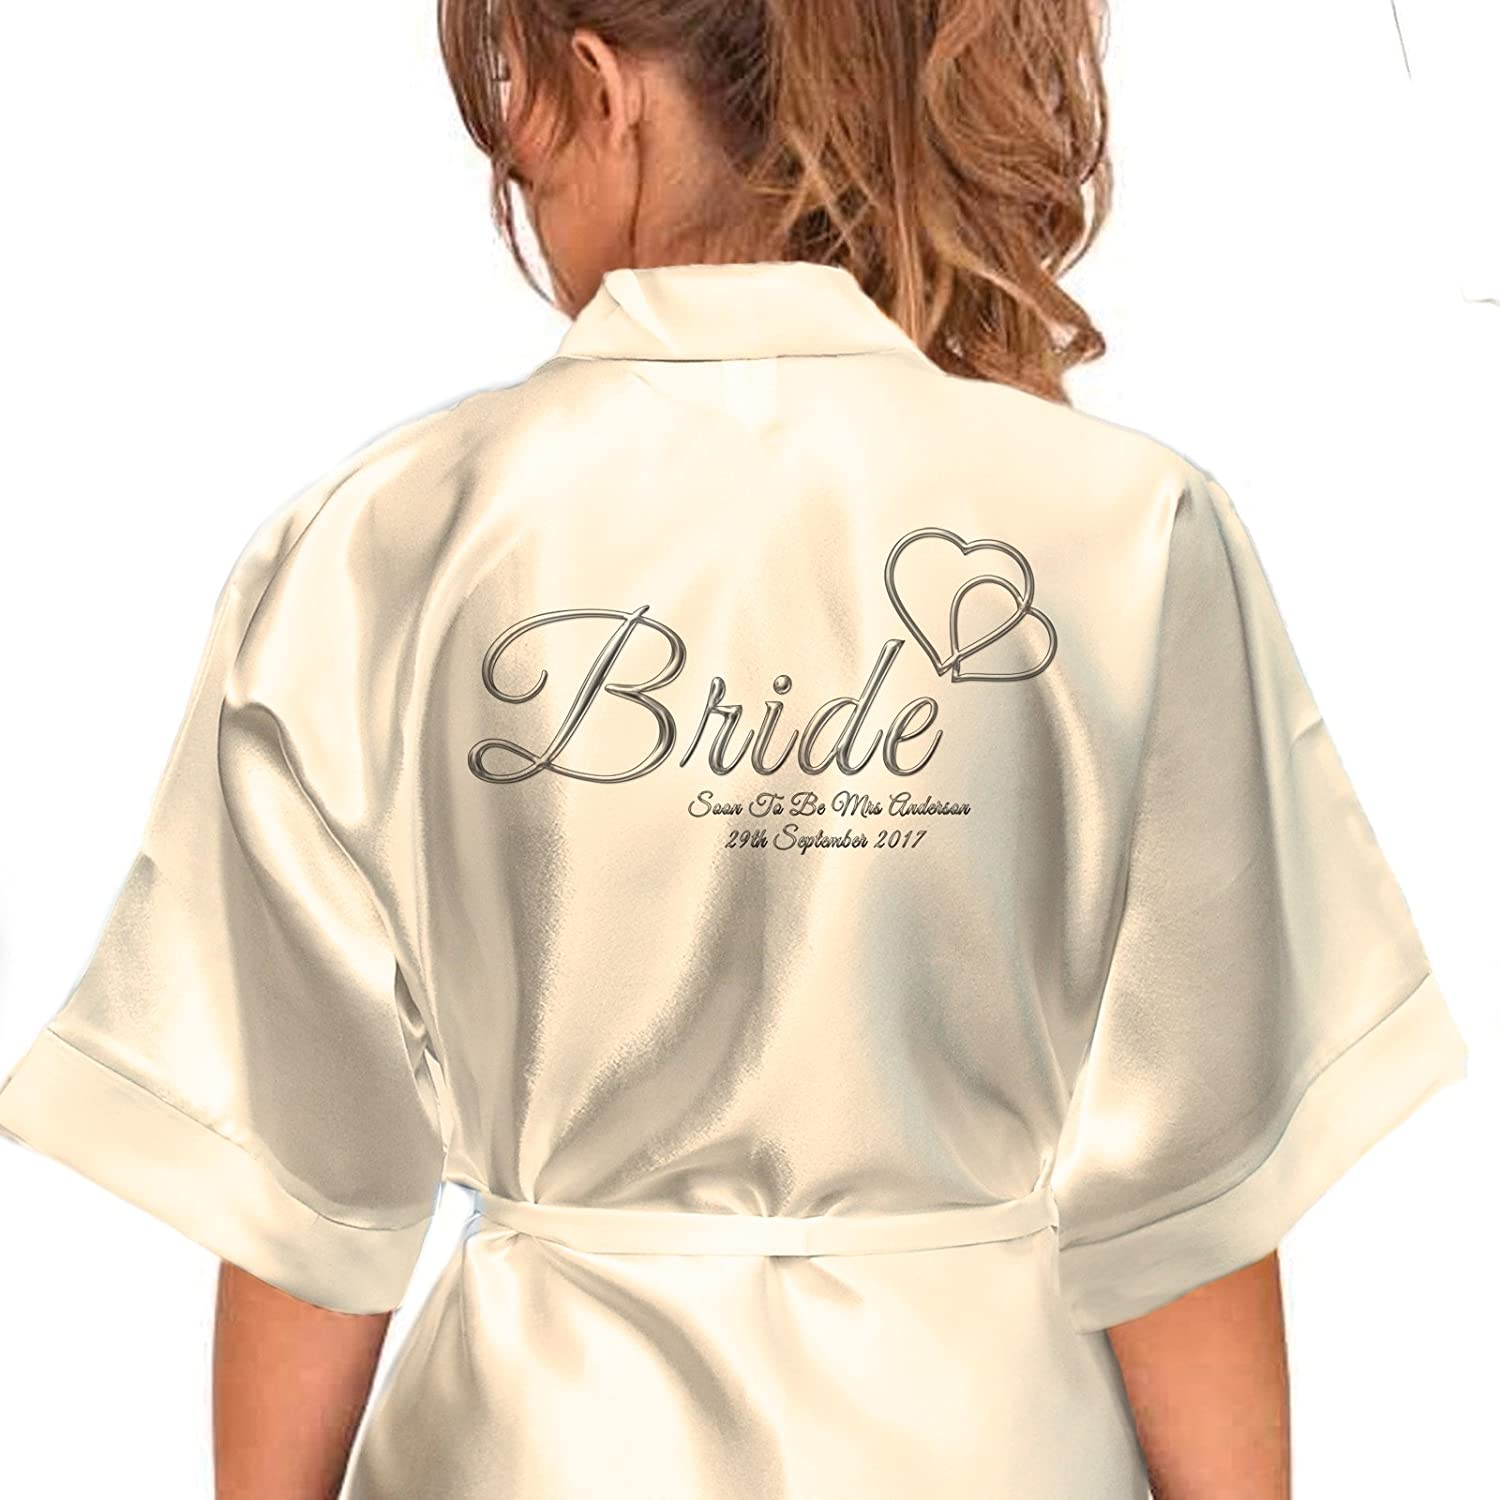 Personalised Satin Kimono/Robe Hearts Design 1. Bride, Bridesmaid, Maid of Honour, Mother of the Bride/Groom (Silver Effect) … (2-4 yrs) Inspired Creative Design ®